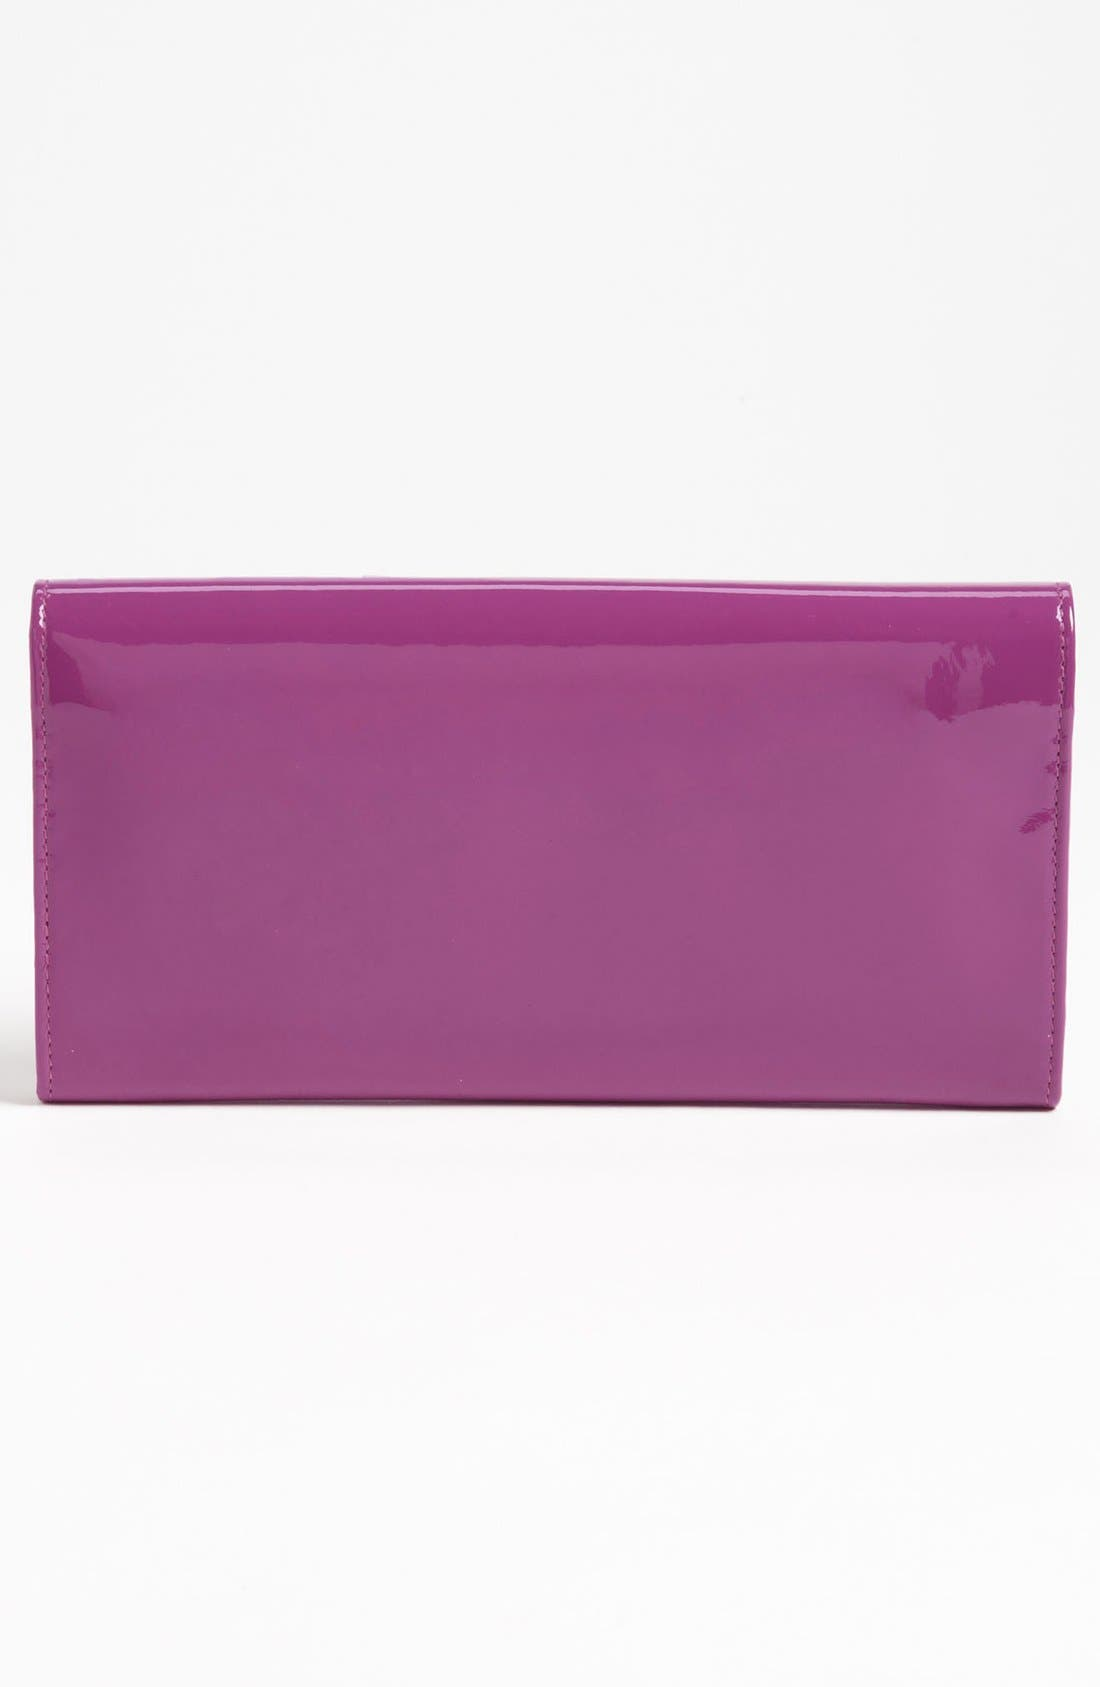 Alternate Image 2  - Jimmy Choo 'Reese' Patent Leather Clutch